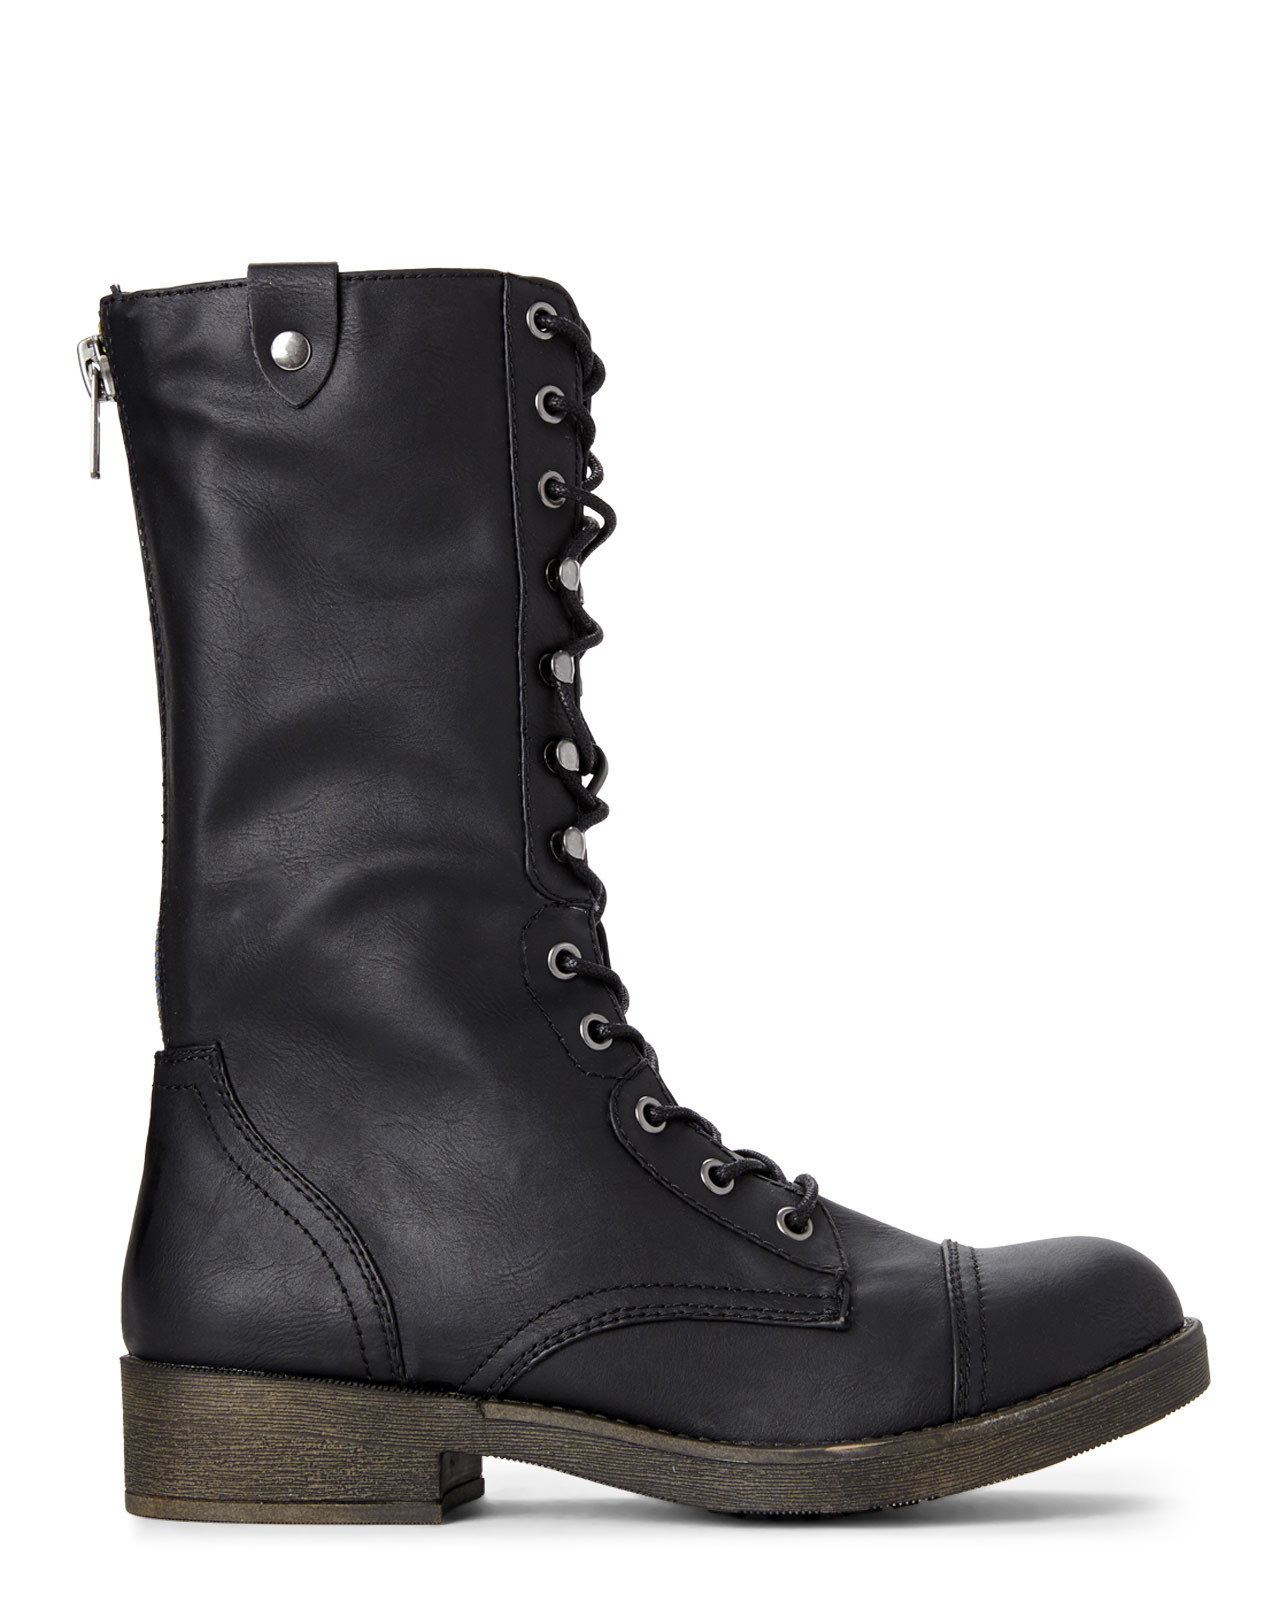 Madden girl Black Motorrr Fold-Down Combat Boots in Black | Lyst